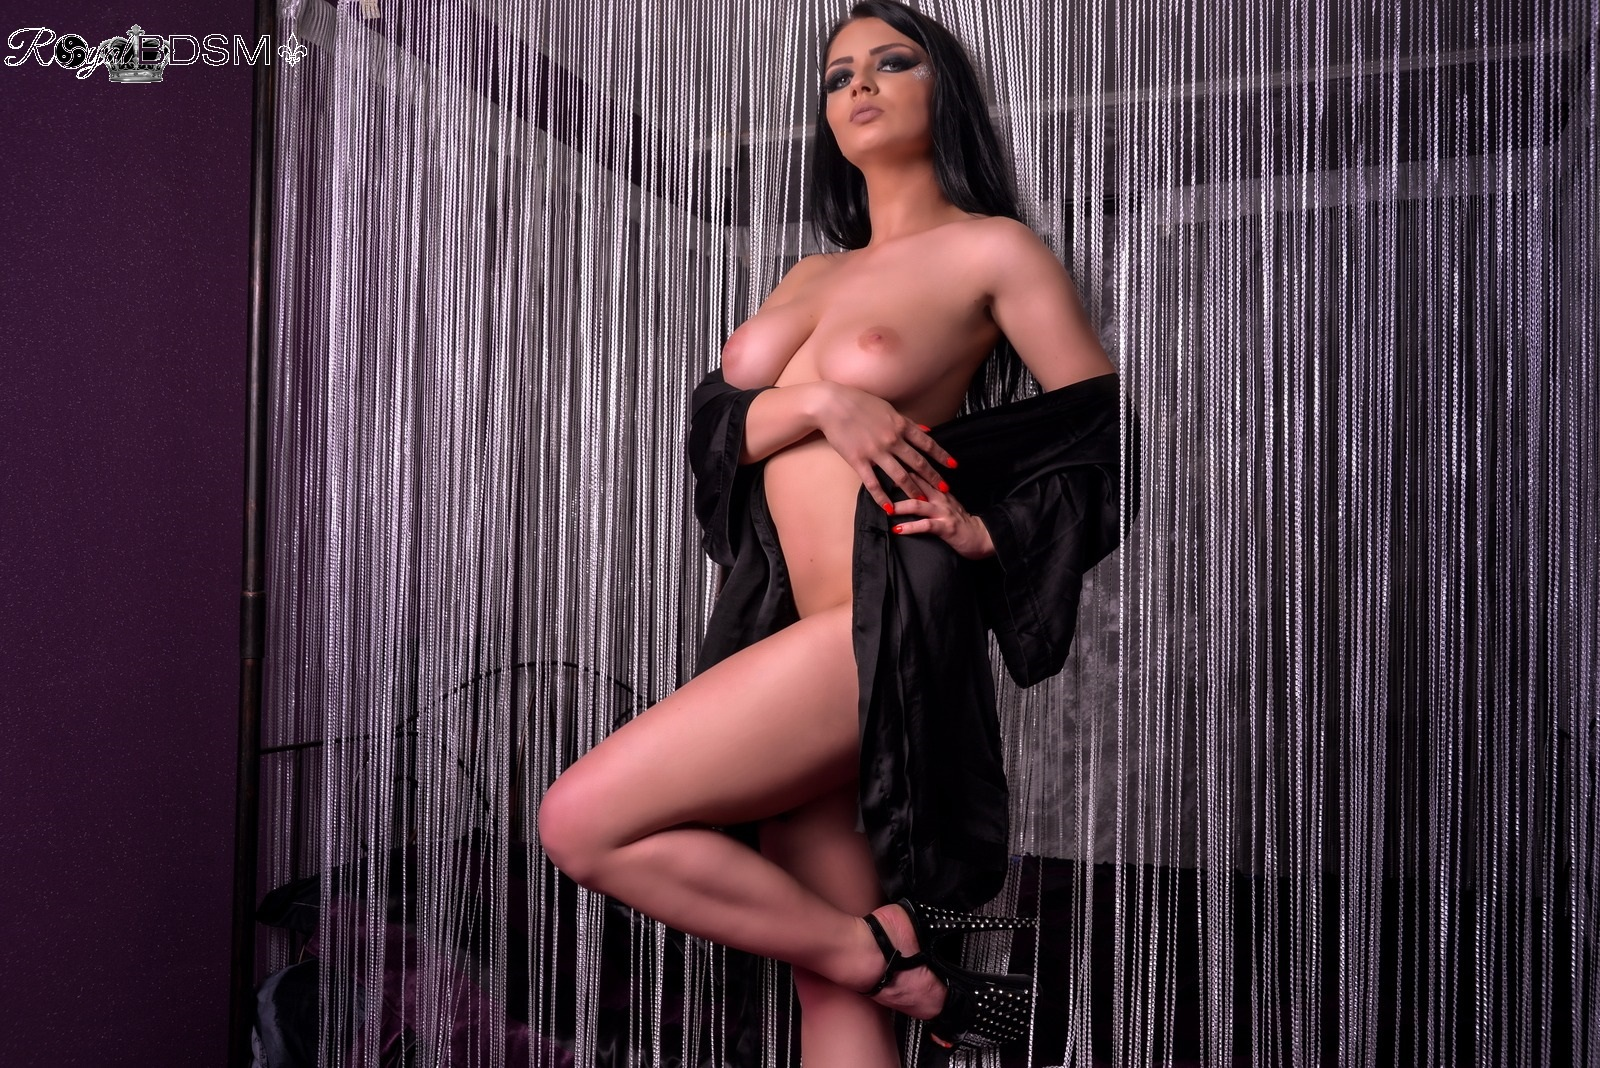 watching her furiously masturbate with amazing orgasm Find Mistress Lexa on #bdsm #fetish #domina #smoking #boots #mistress  #joi #cei #sph #online #live